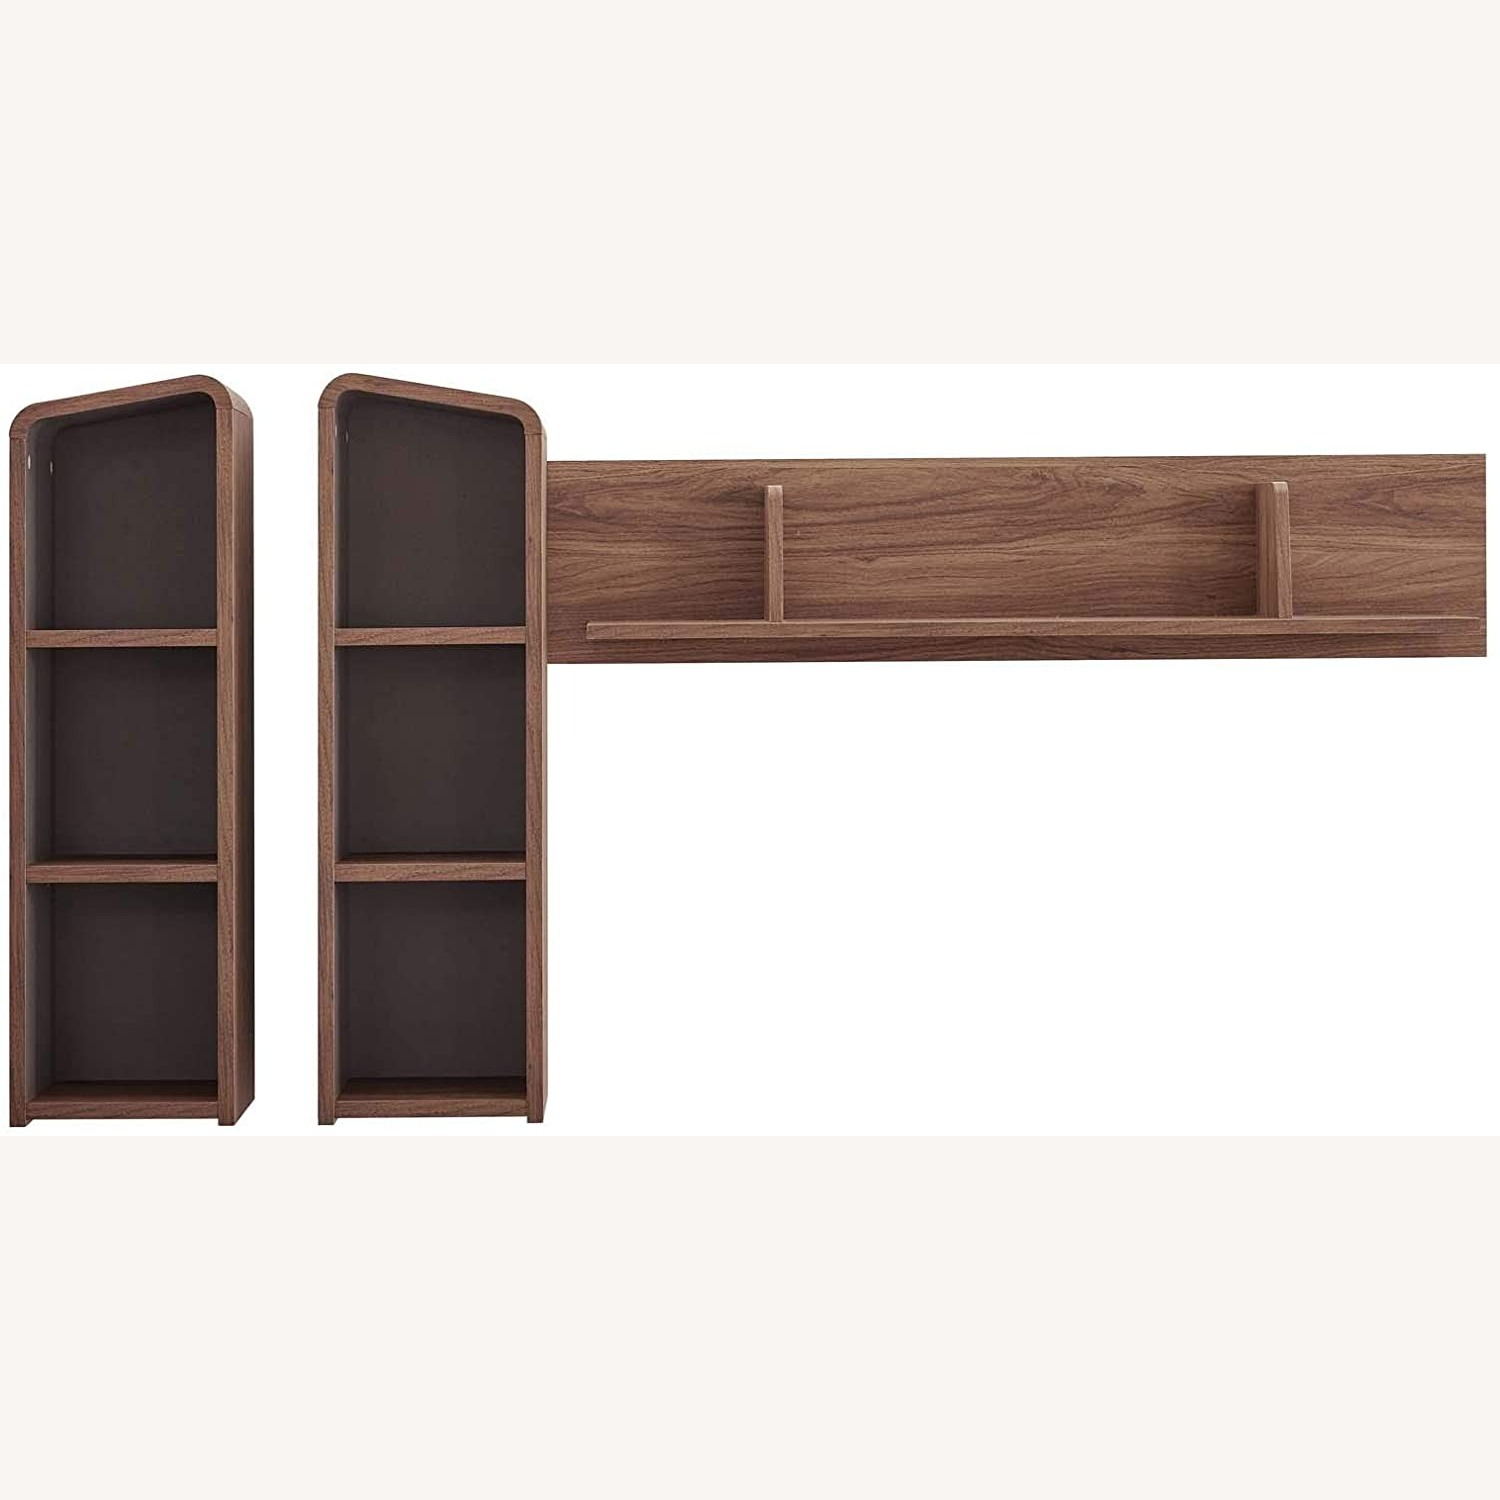 Wall Mounted Shelves In Walnut W/ Rounded Edges - image-1